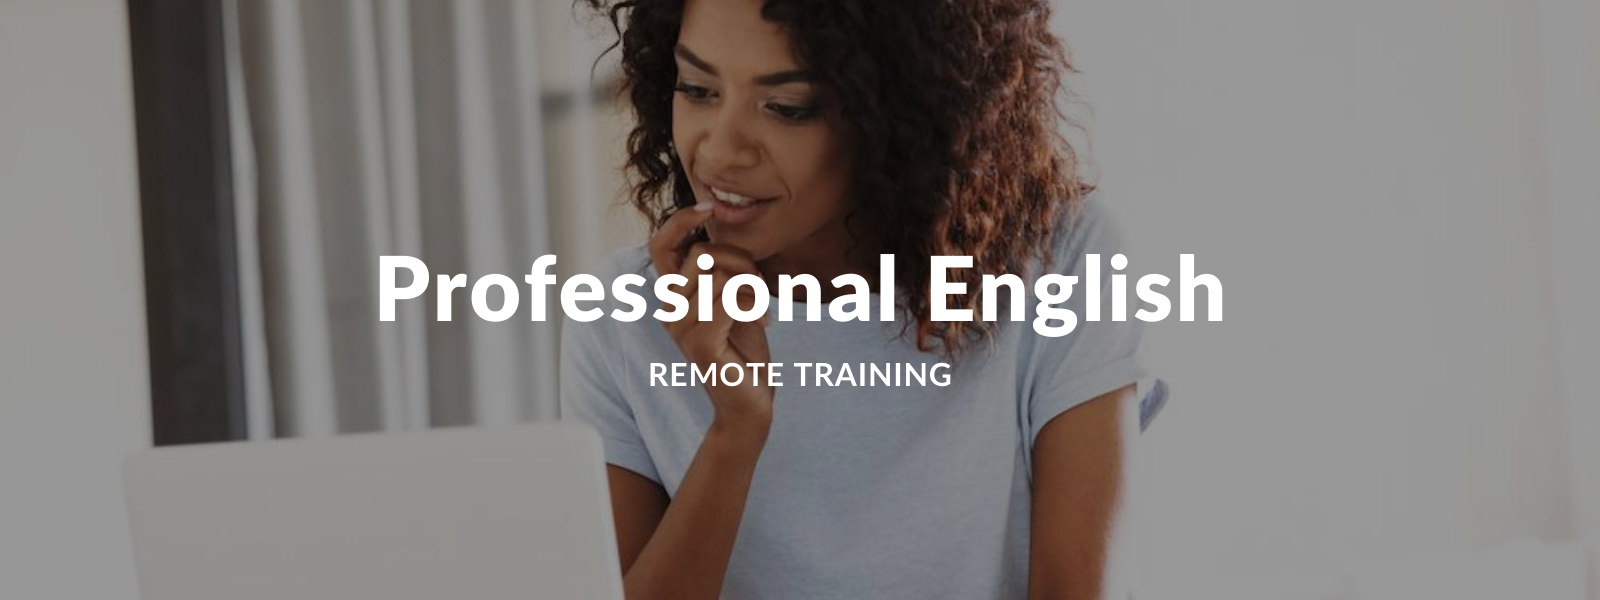 Remote employee training - Professional English Training Online